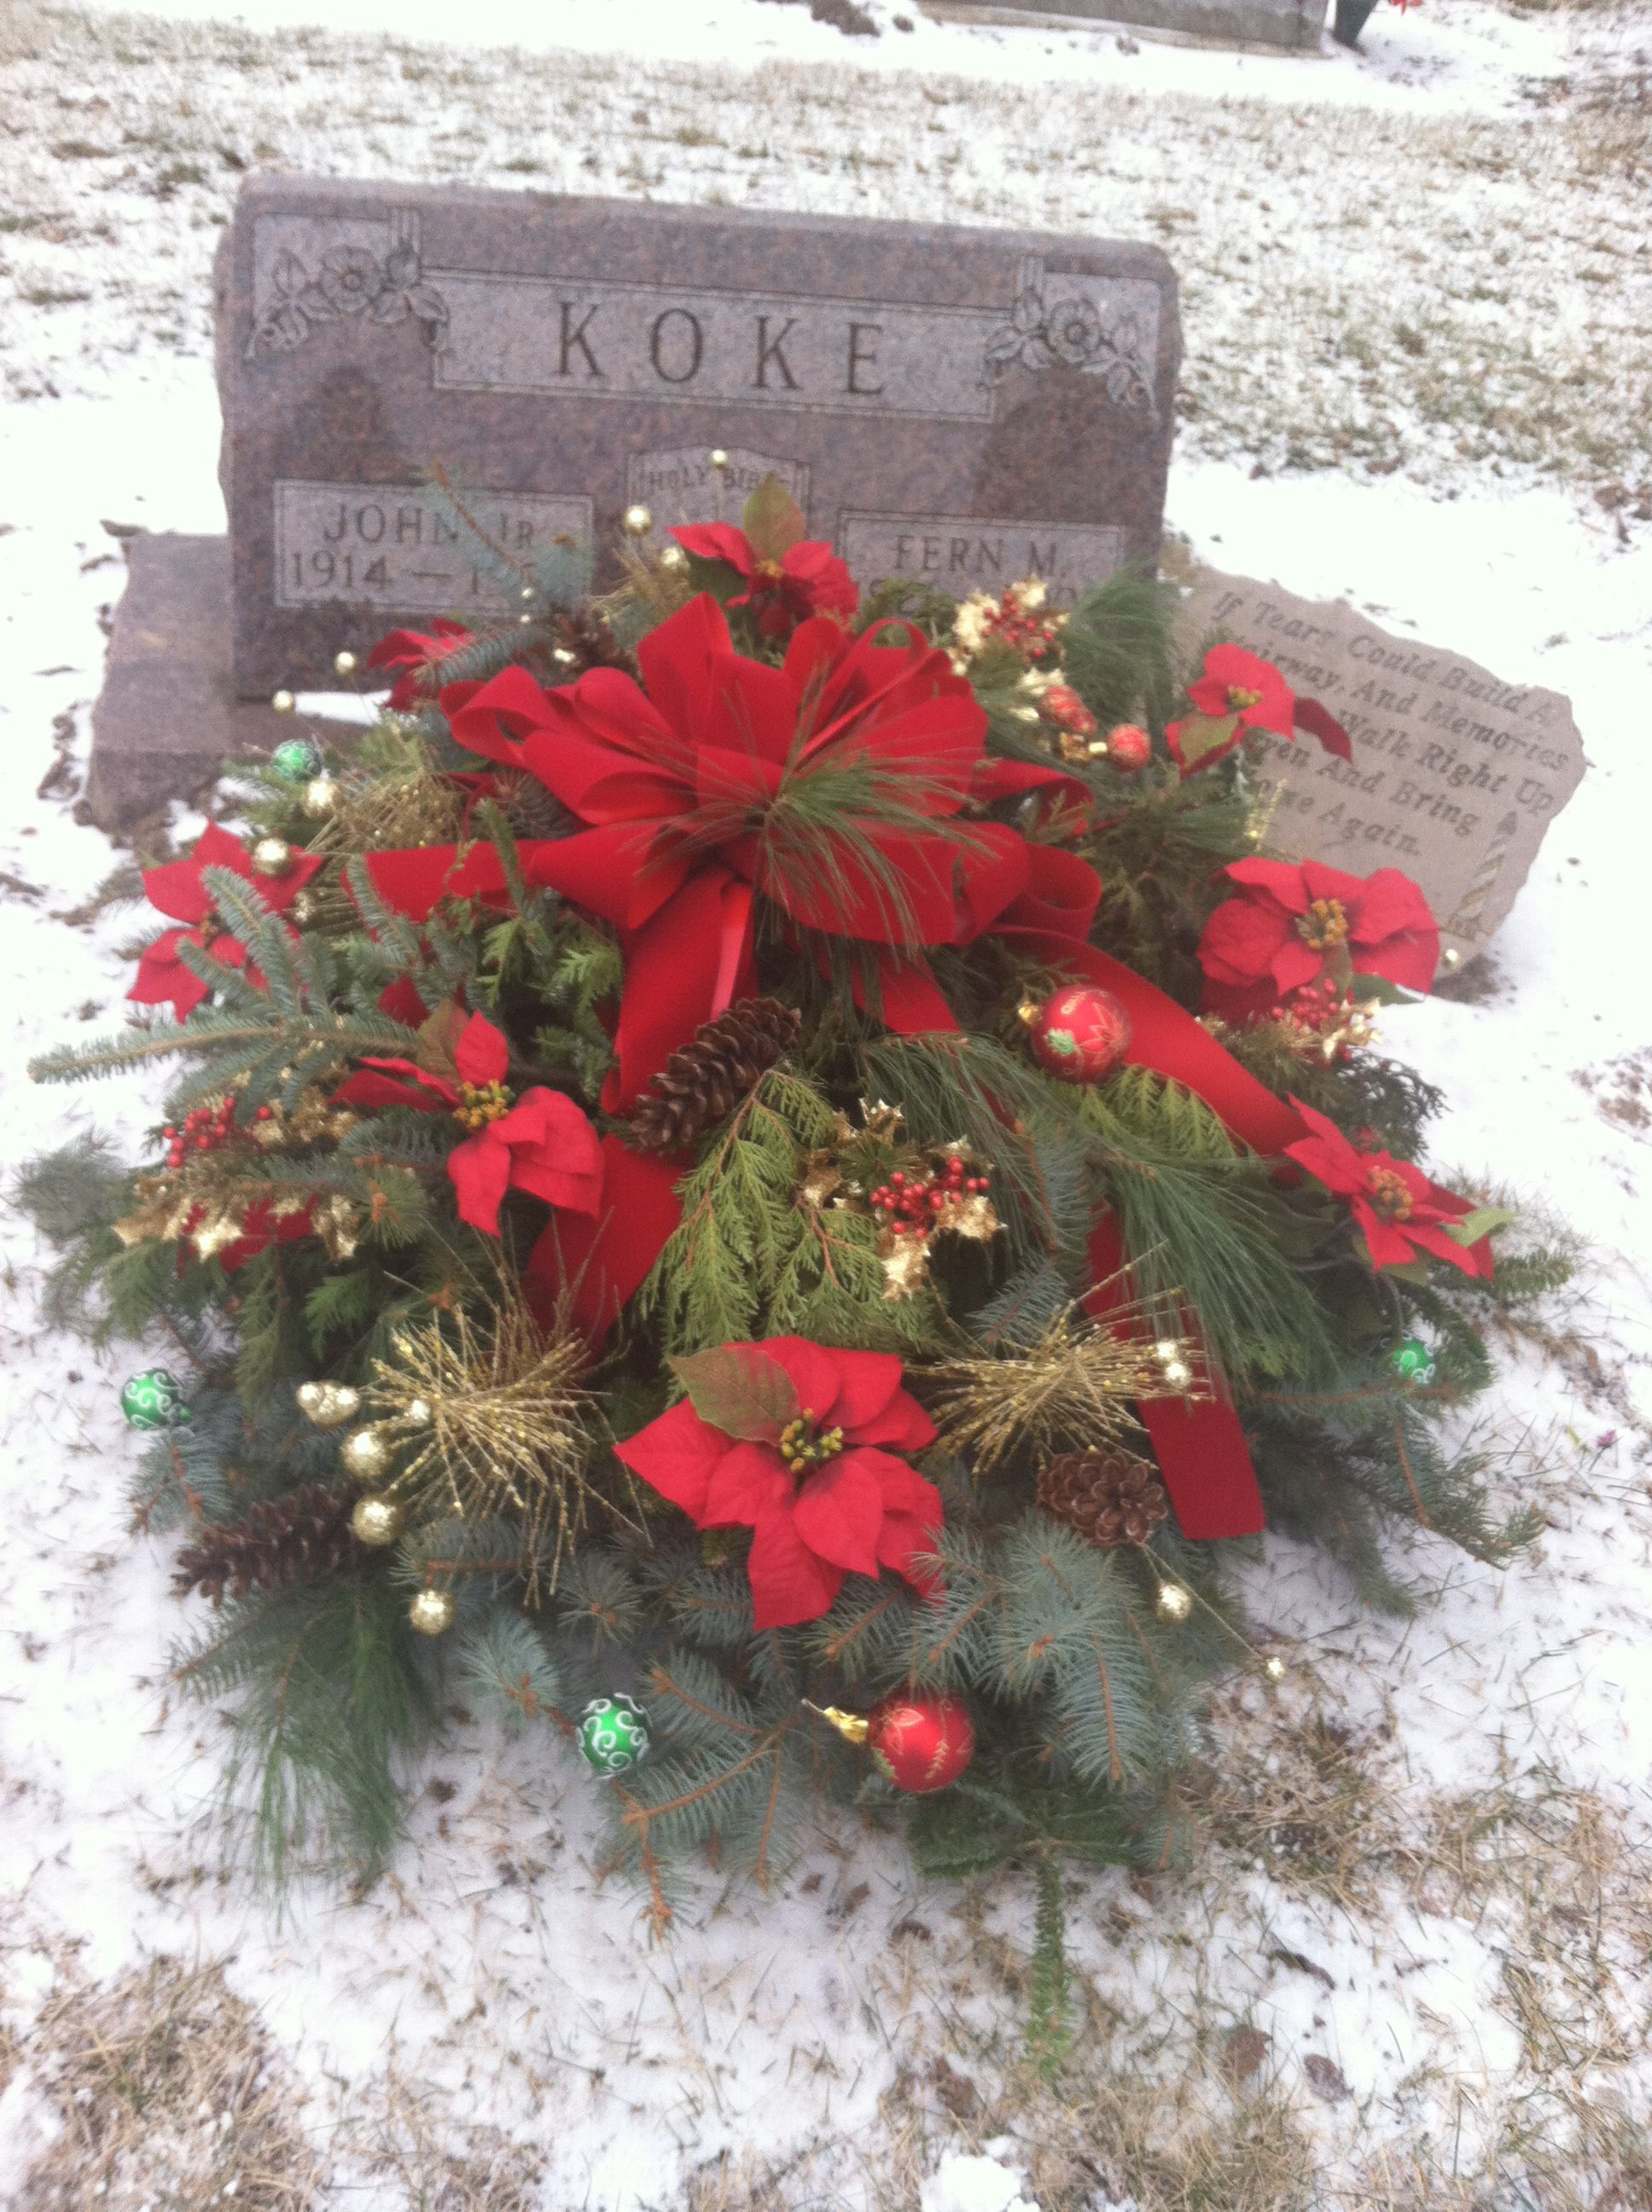 Christmas Grave Blankets For Sale Near Me.Grave Blankets I Make To Sell My Homemade Crafts